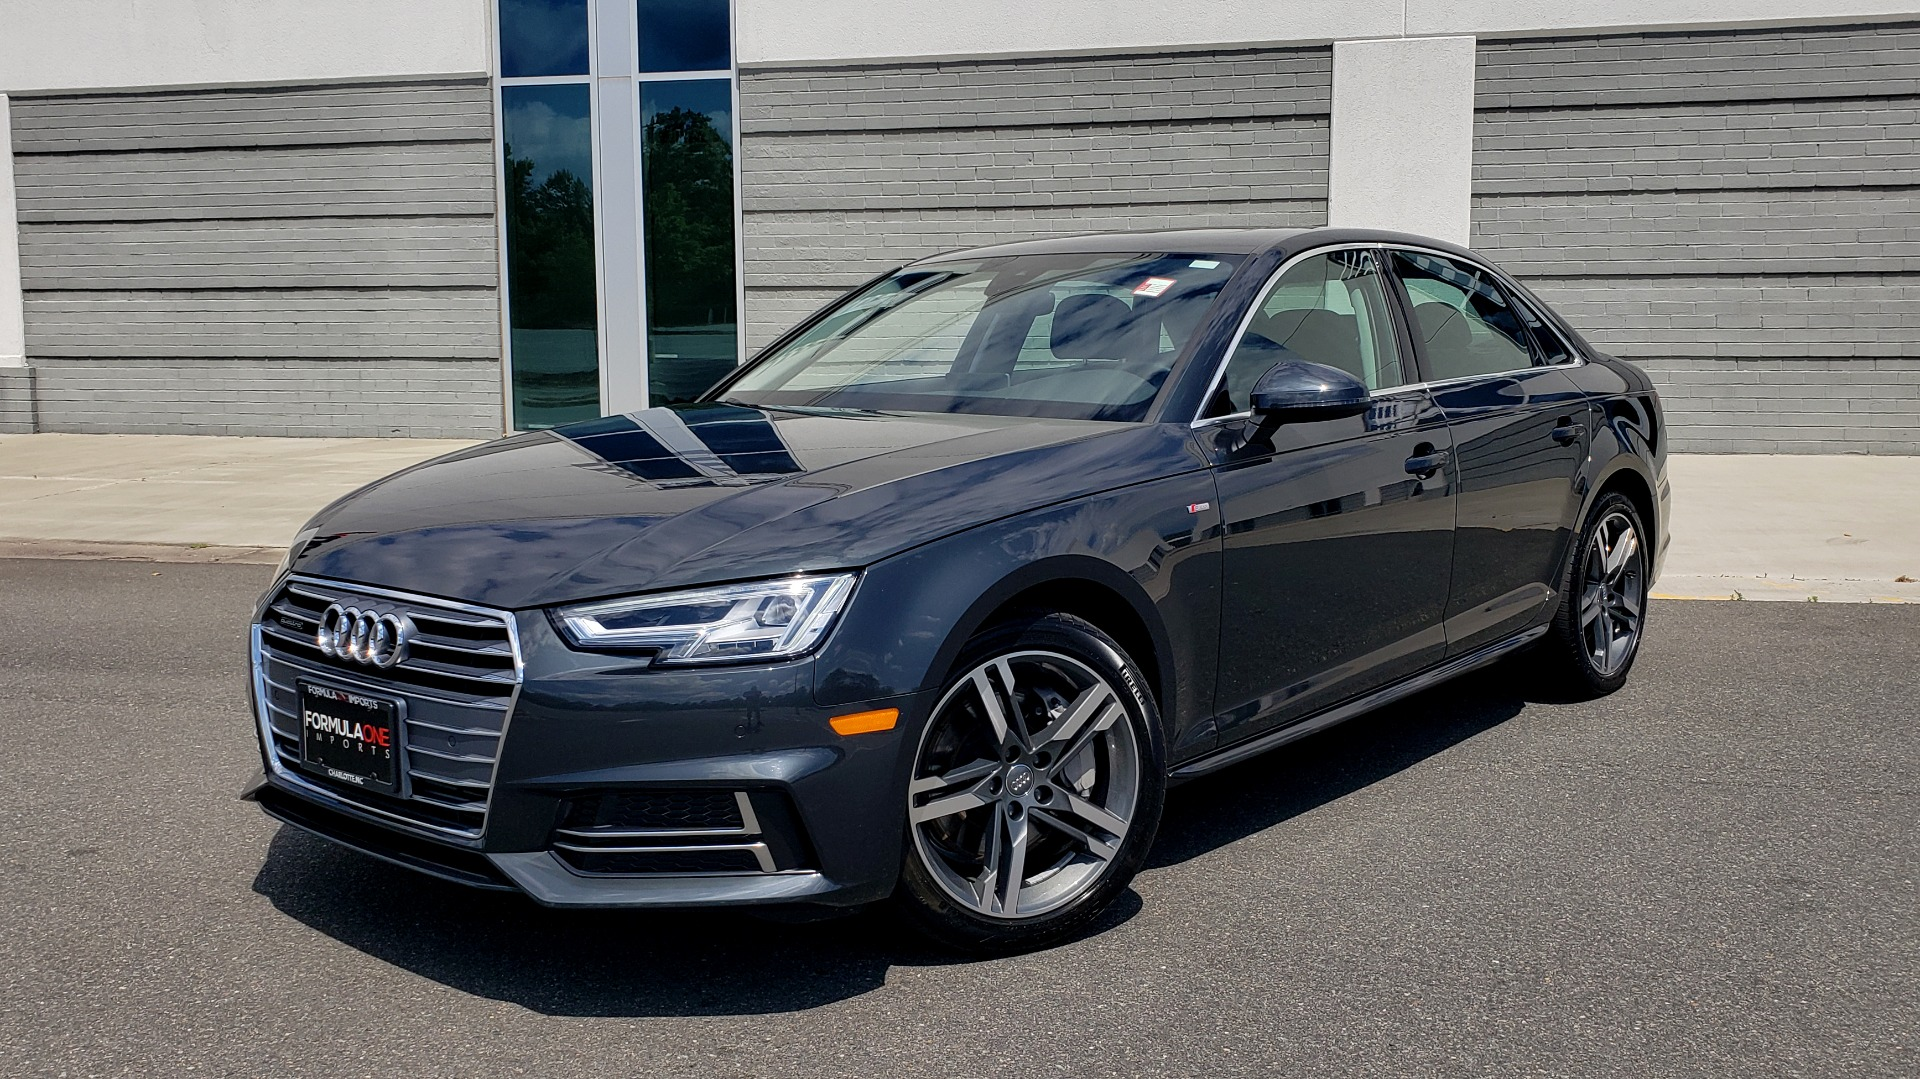 Used 2018 Audi A4 TECH PREMIUM PLUS / NAV / B&O SND / SUNROOF / CLD WTHR / REARVIEW for sale $28,595 at Formula Imports in Charlotte NC 28227 1